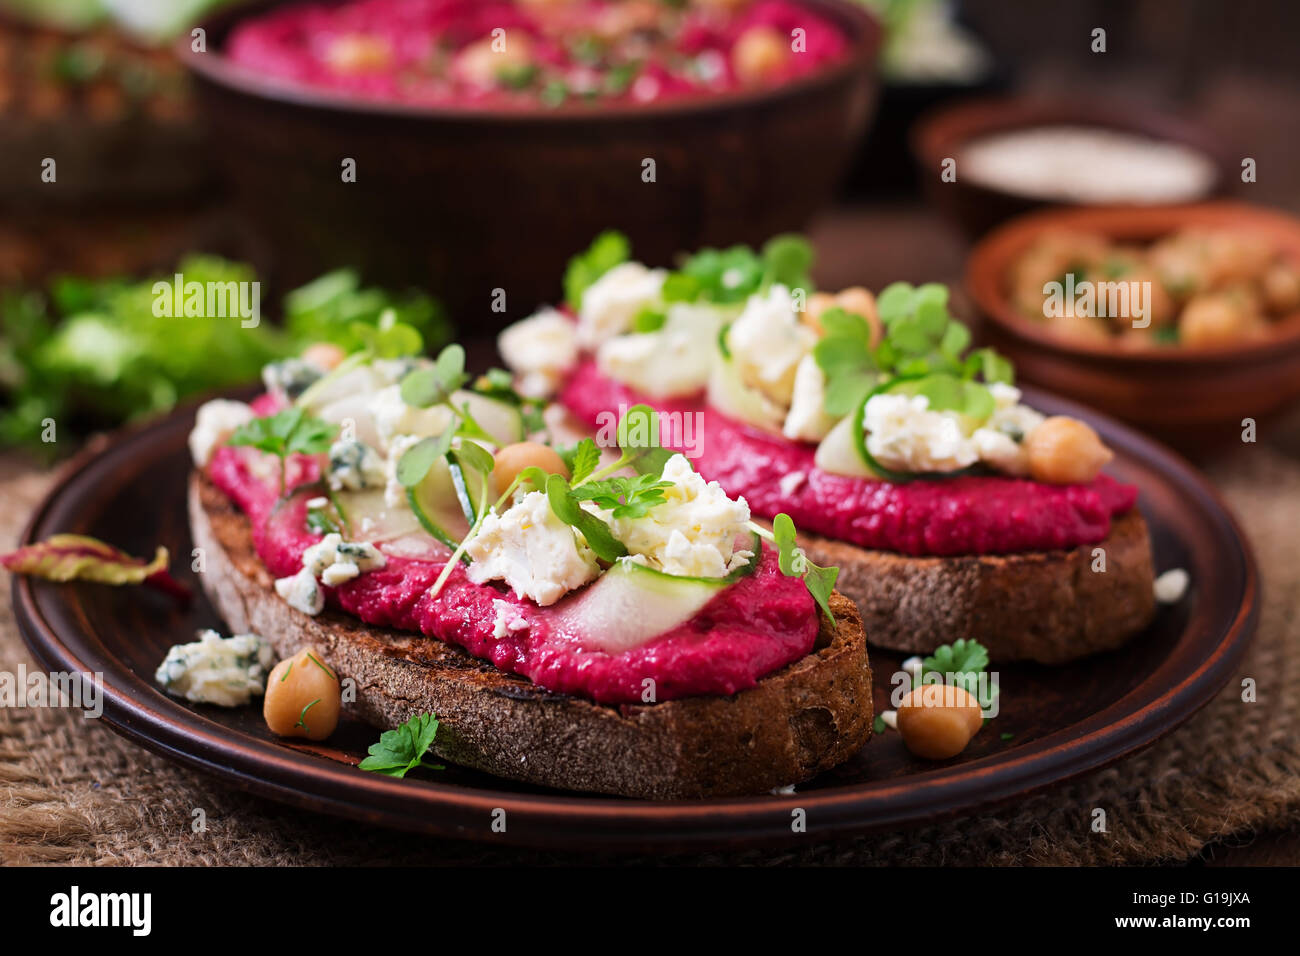 Vegan sandwiches with beetroot hummus, cucumber and blue cheese - Stock Image